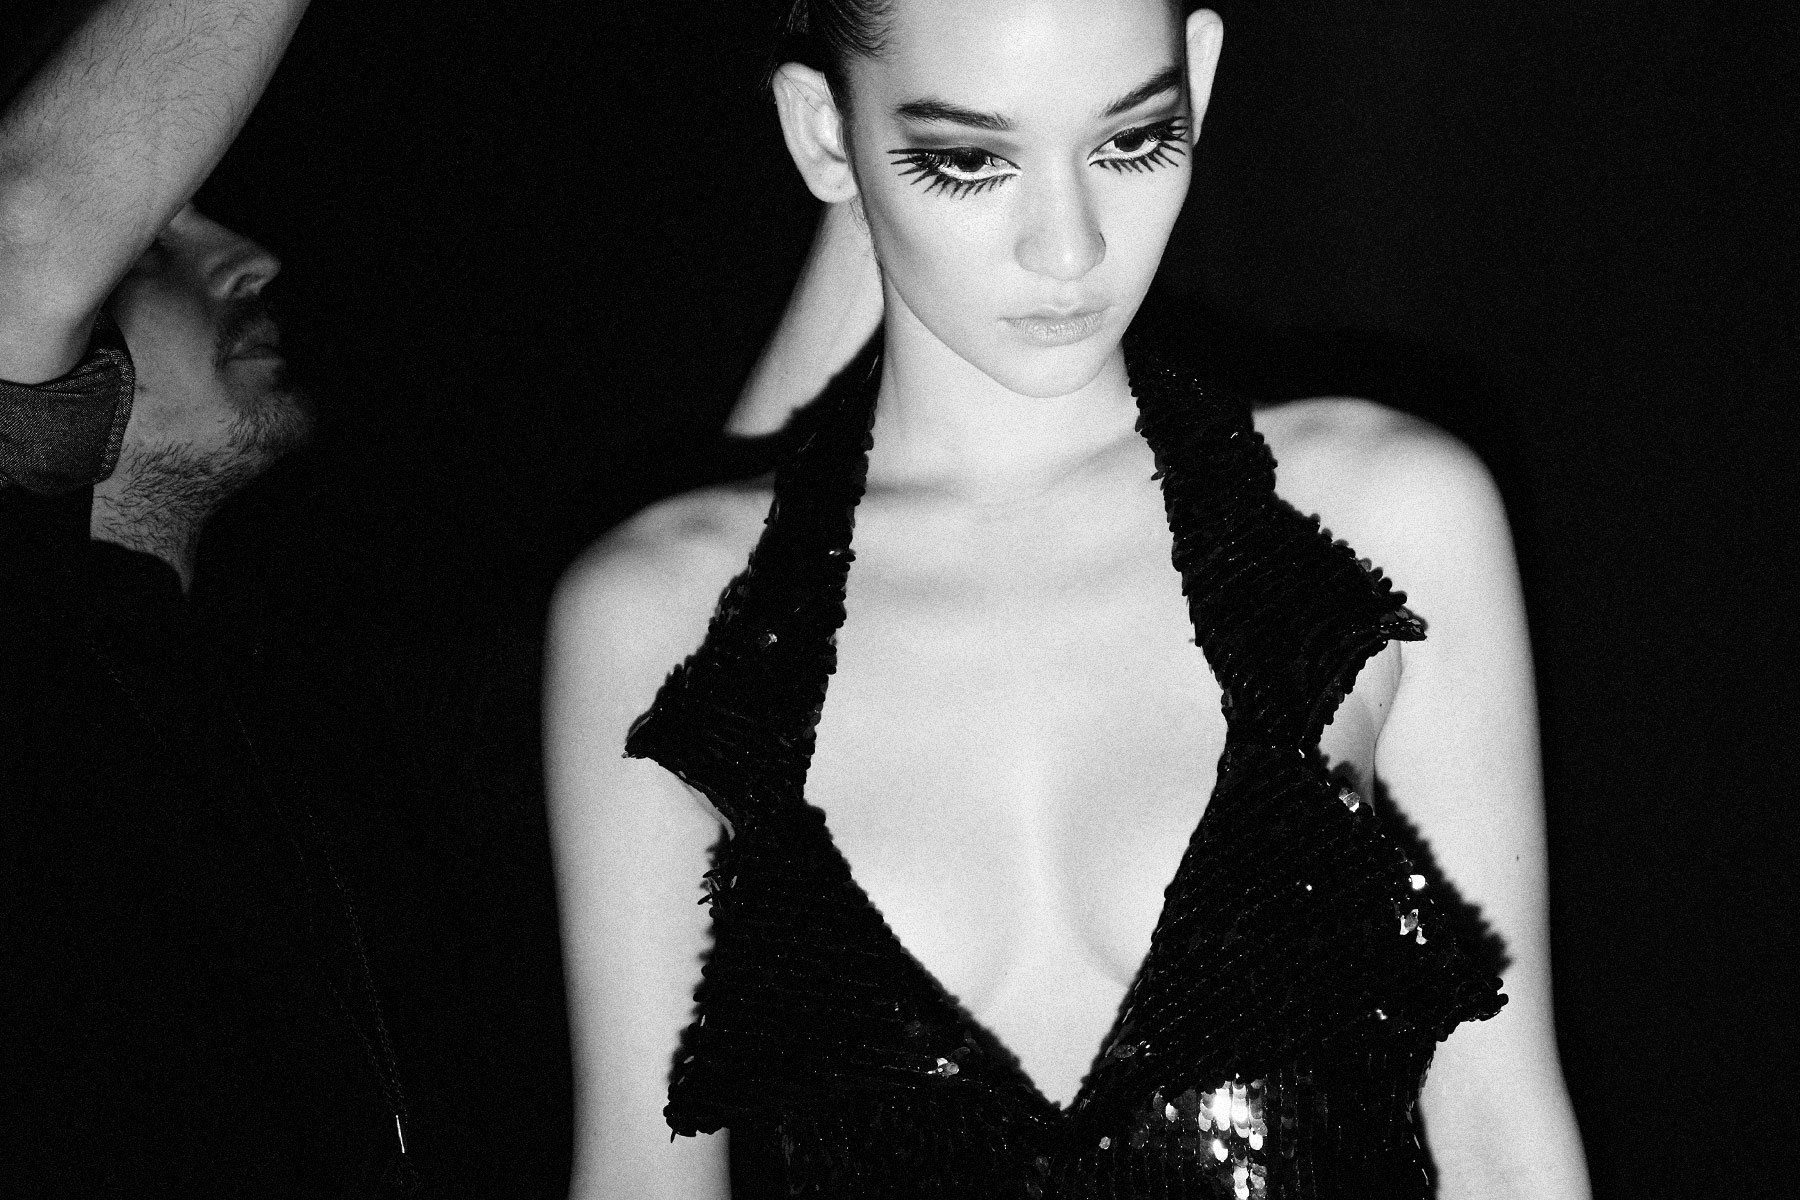 Spiky lashes with a halter sequin dress backstage at Christian Cowan for Fall 2018. Photographed by Alexander Thompson for Ponyboy magazine.